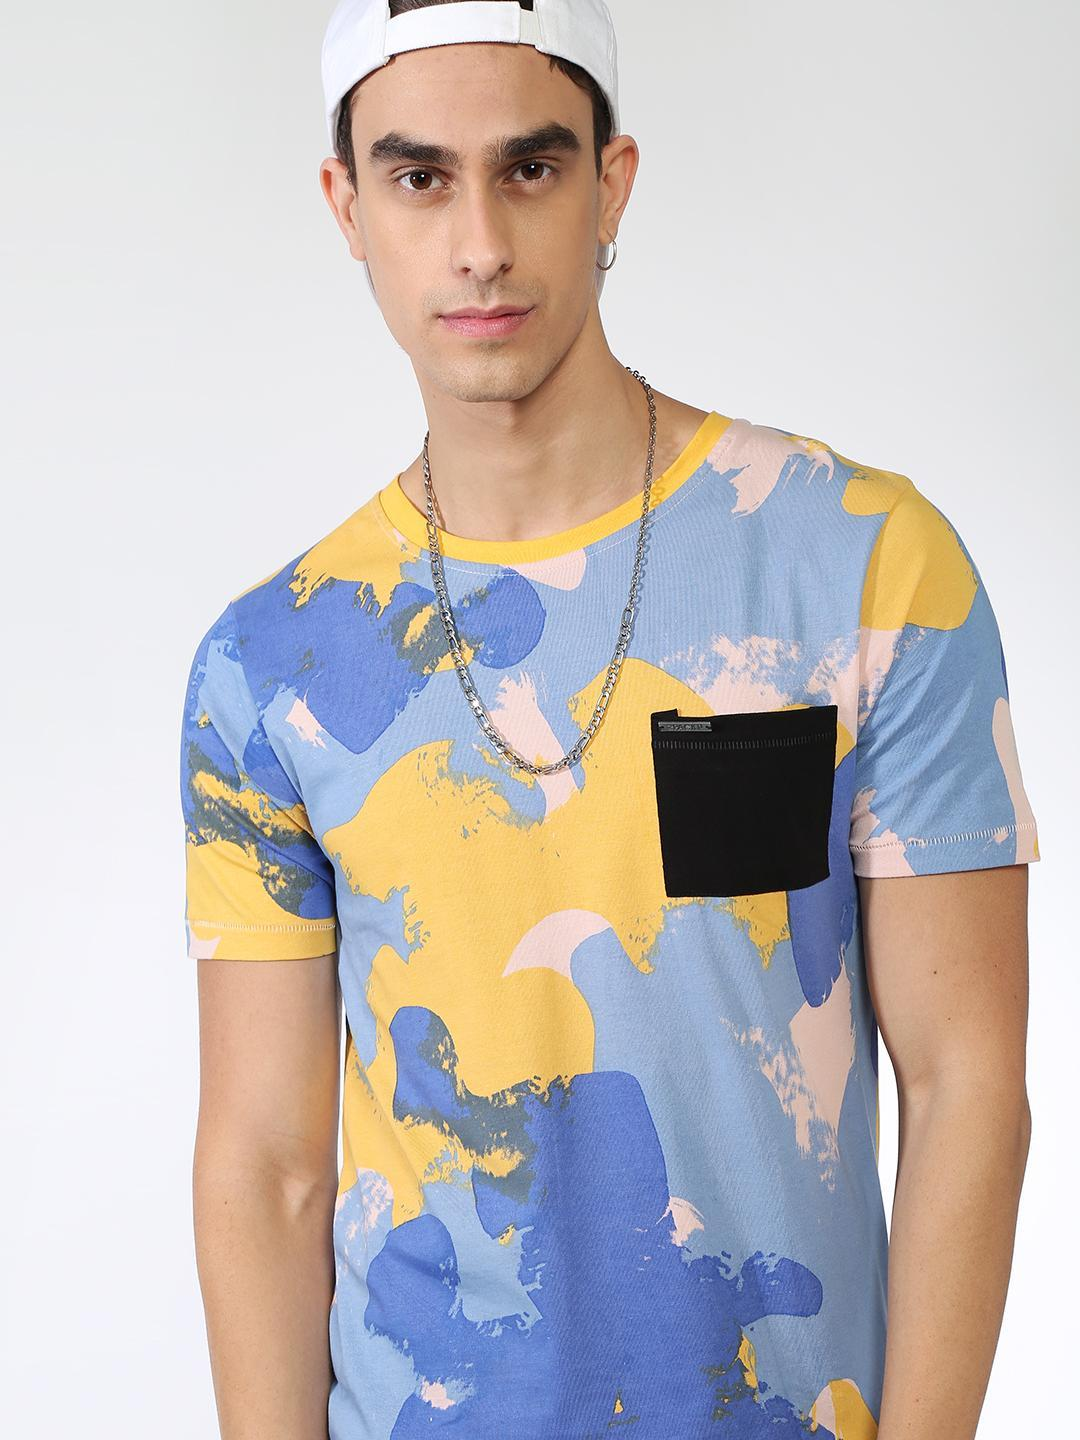 IMPACKT Camouflage Camo Print Patch Pocket T-shirt 1